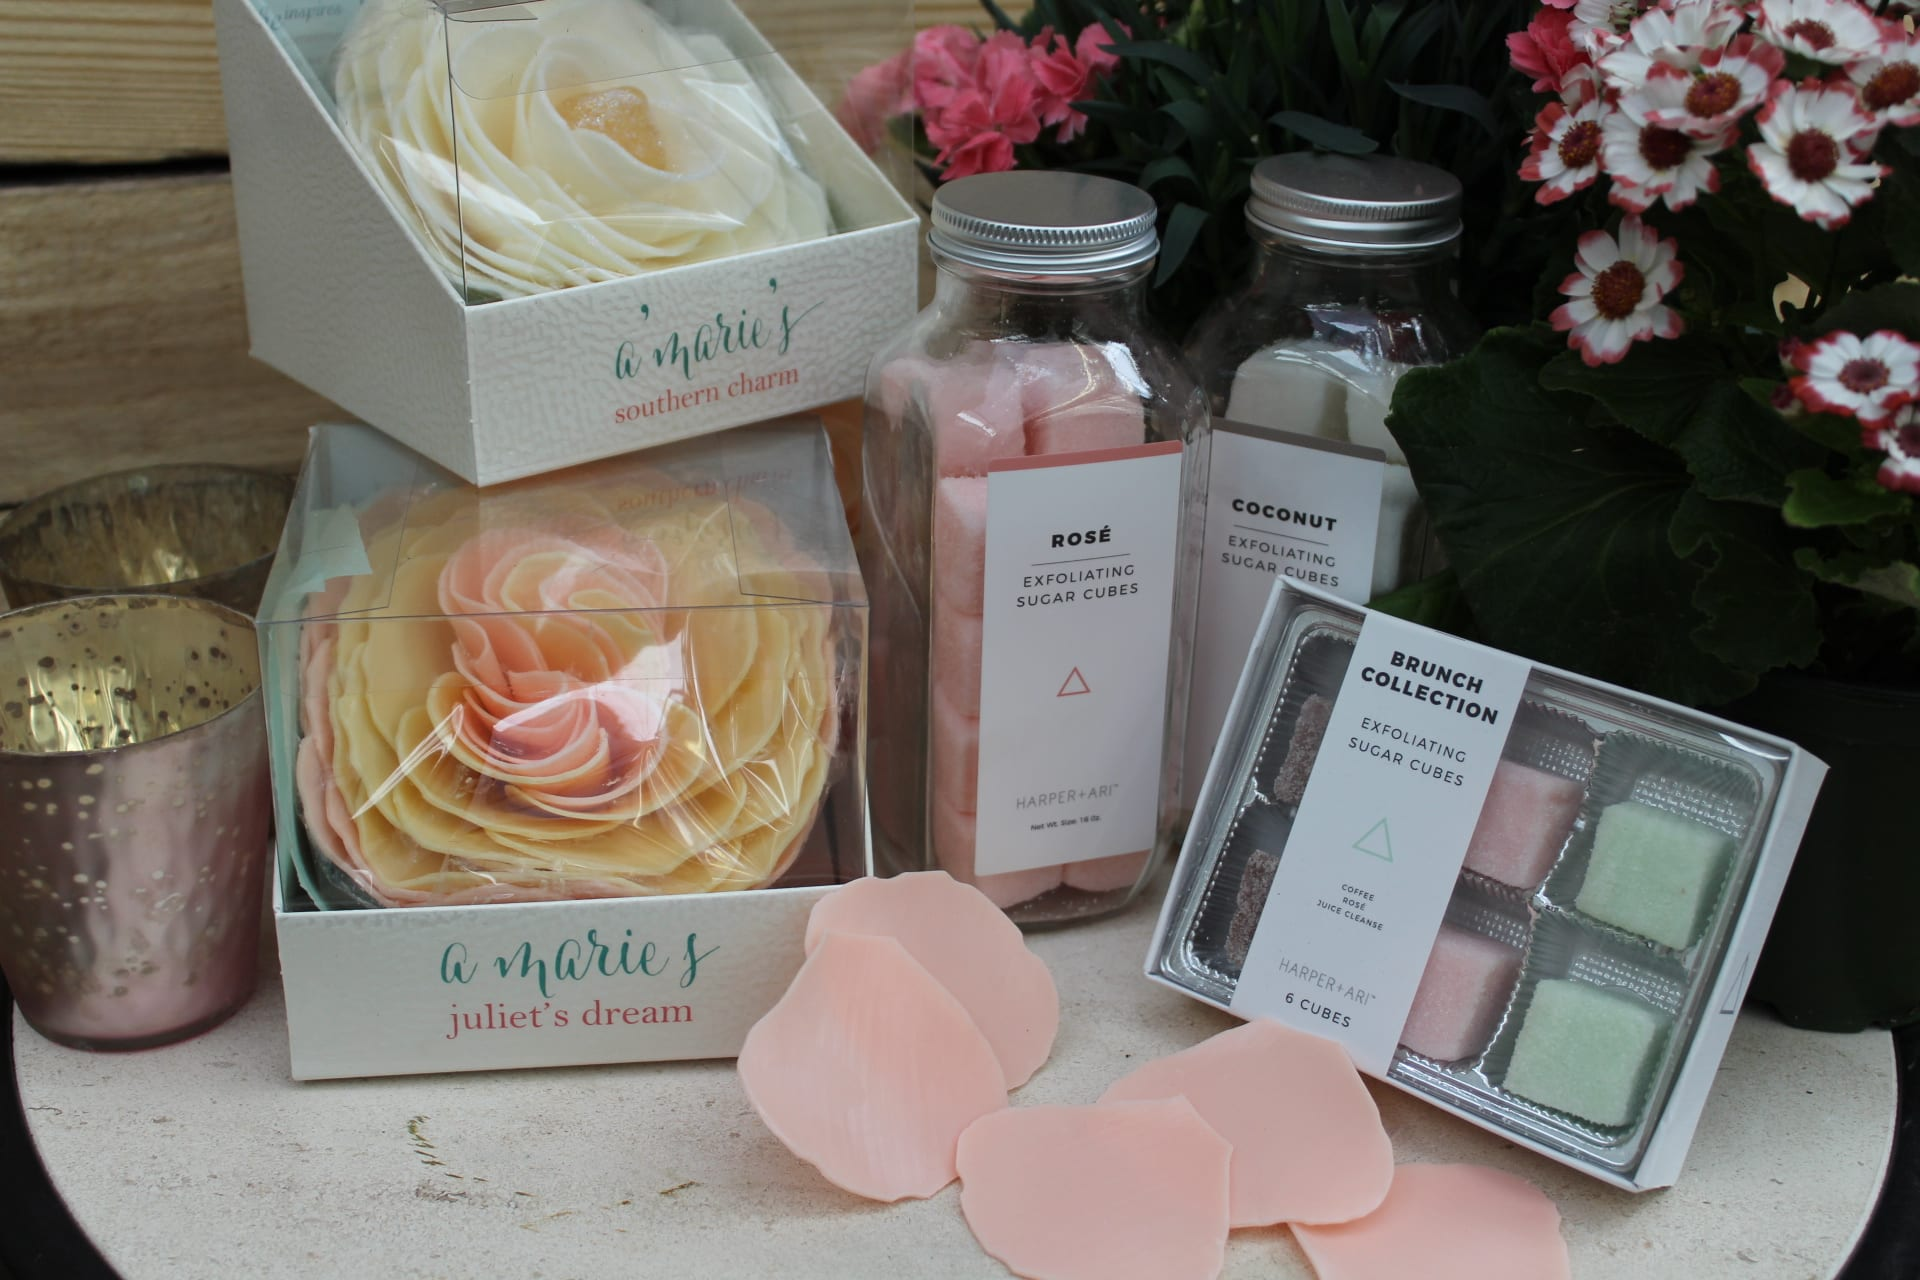 A marie's, Harper + Ari, spa items at City Floral Greenhouse